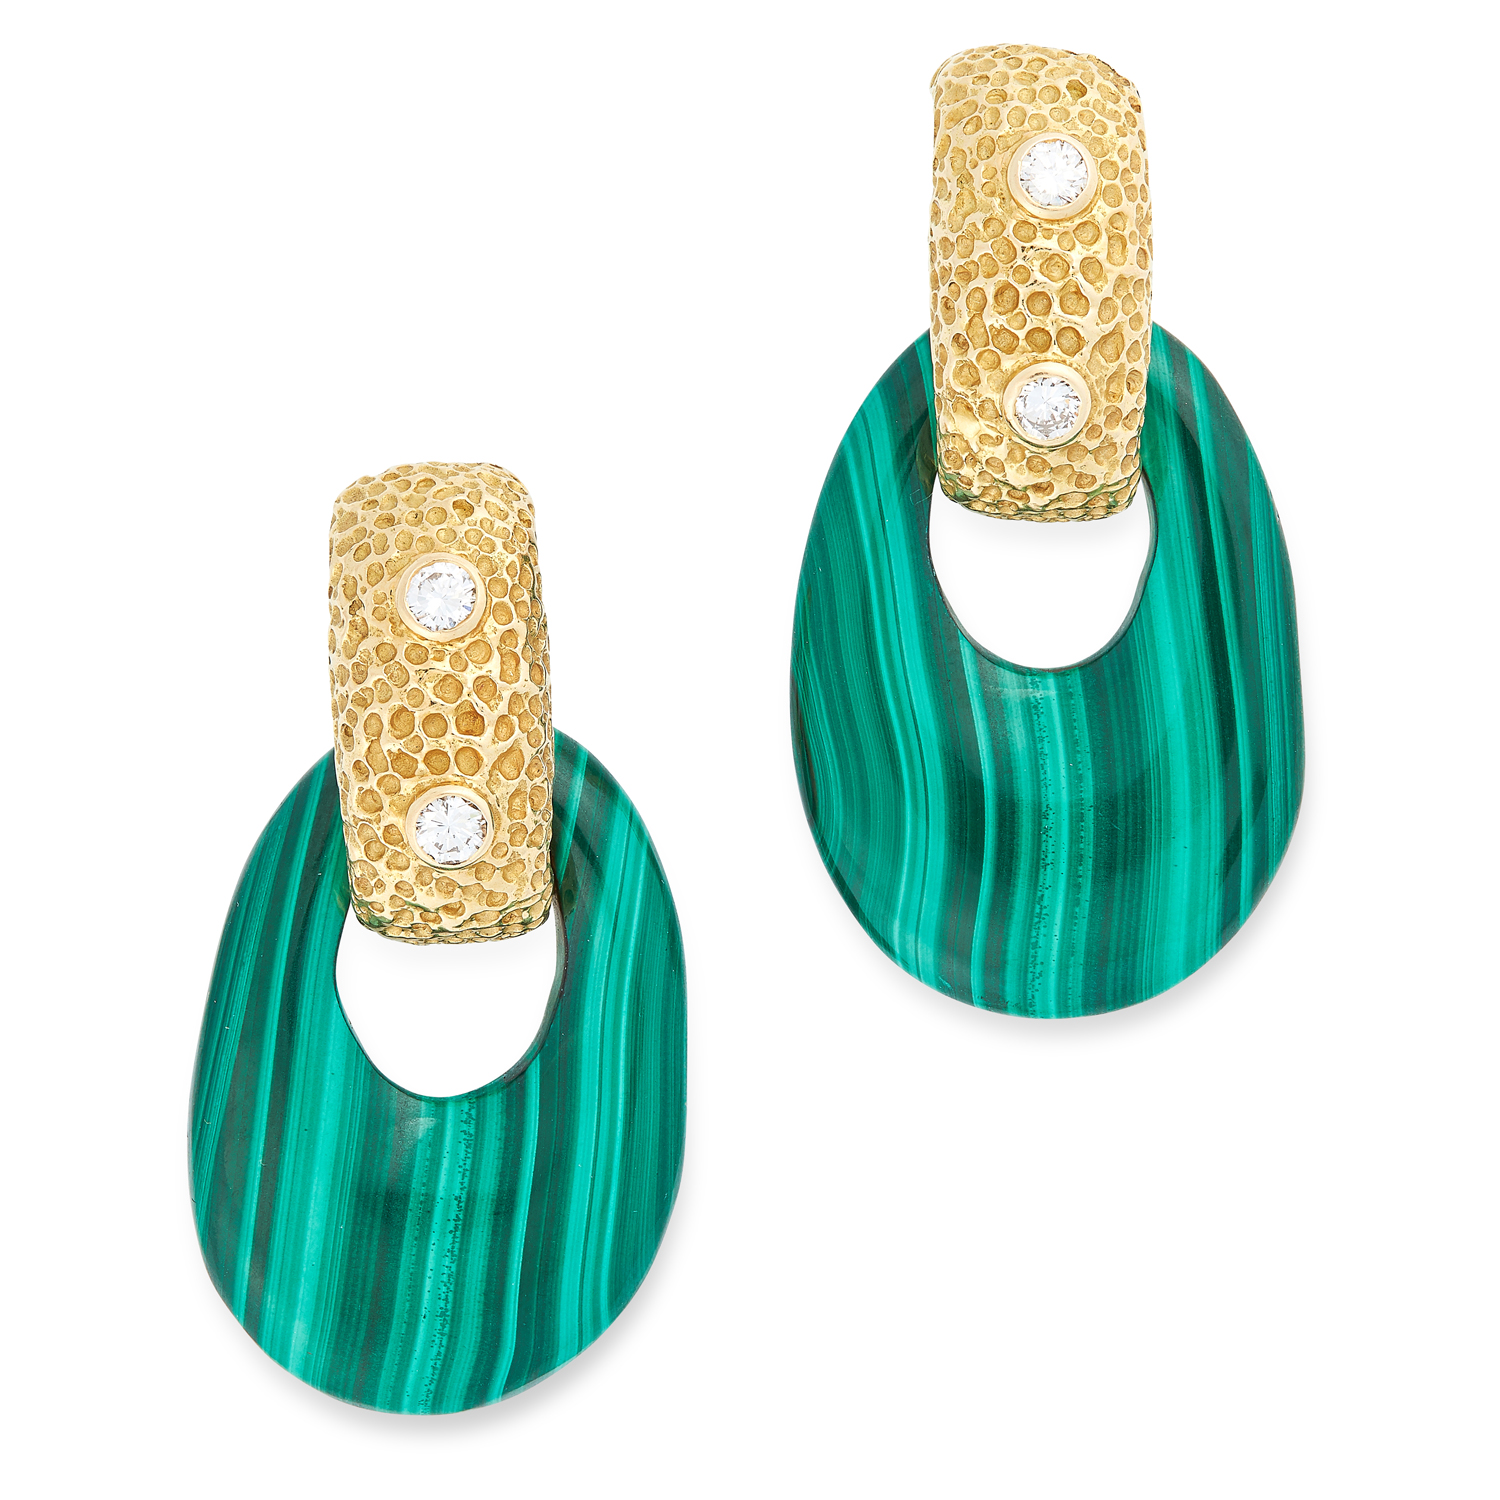 A PAIR OF VINTAGE MALACHITE AND DIAMOND EARRINGS, FRENCH CIRCA 1970 the textured hoop bodies each